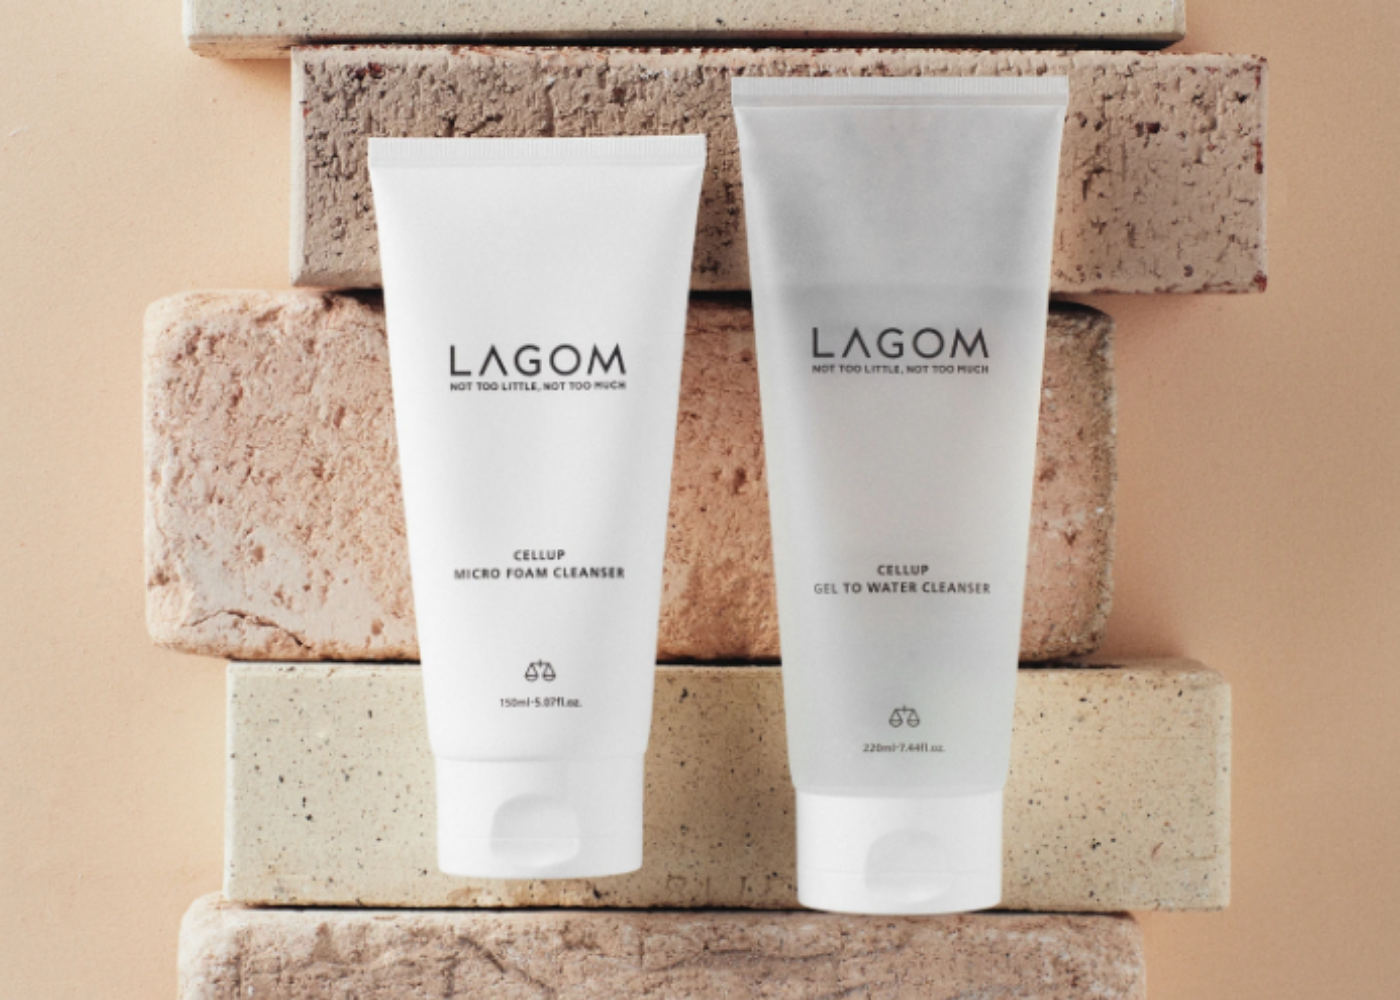 Lagom Cellup Get-to-Water cleanser